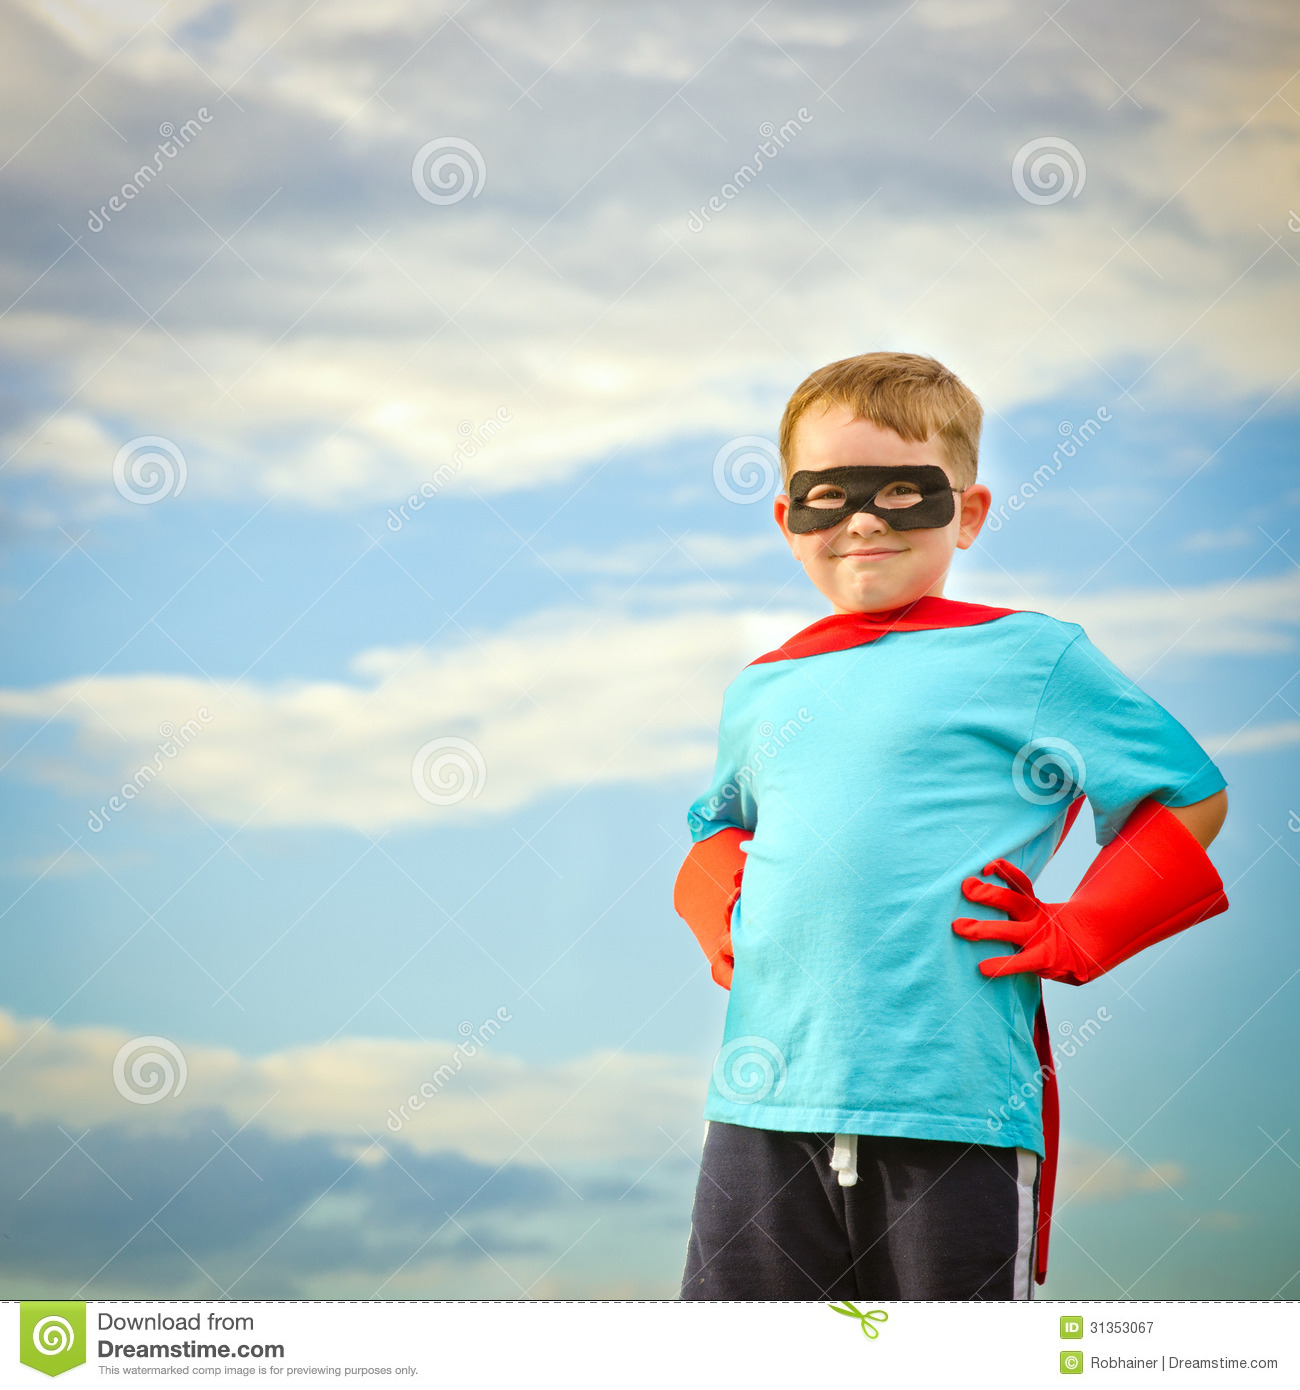 Child Pretending To Be A Superhero Stock Image